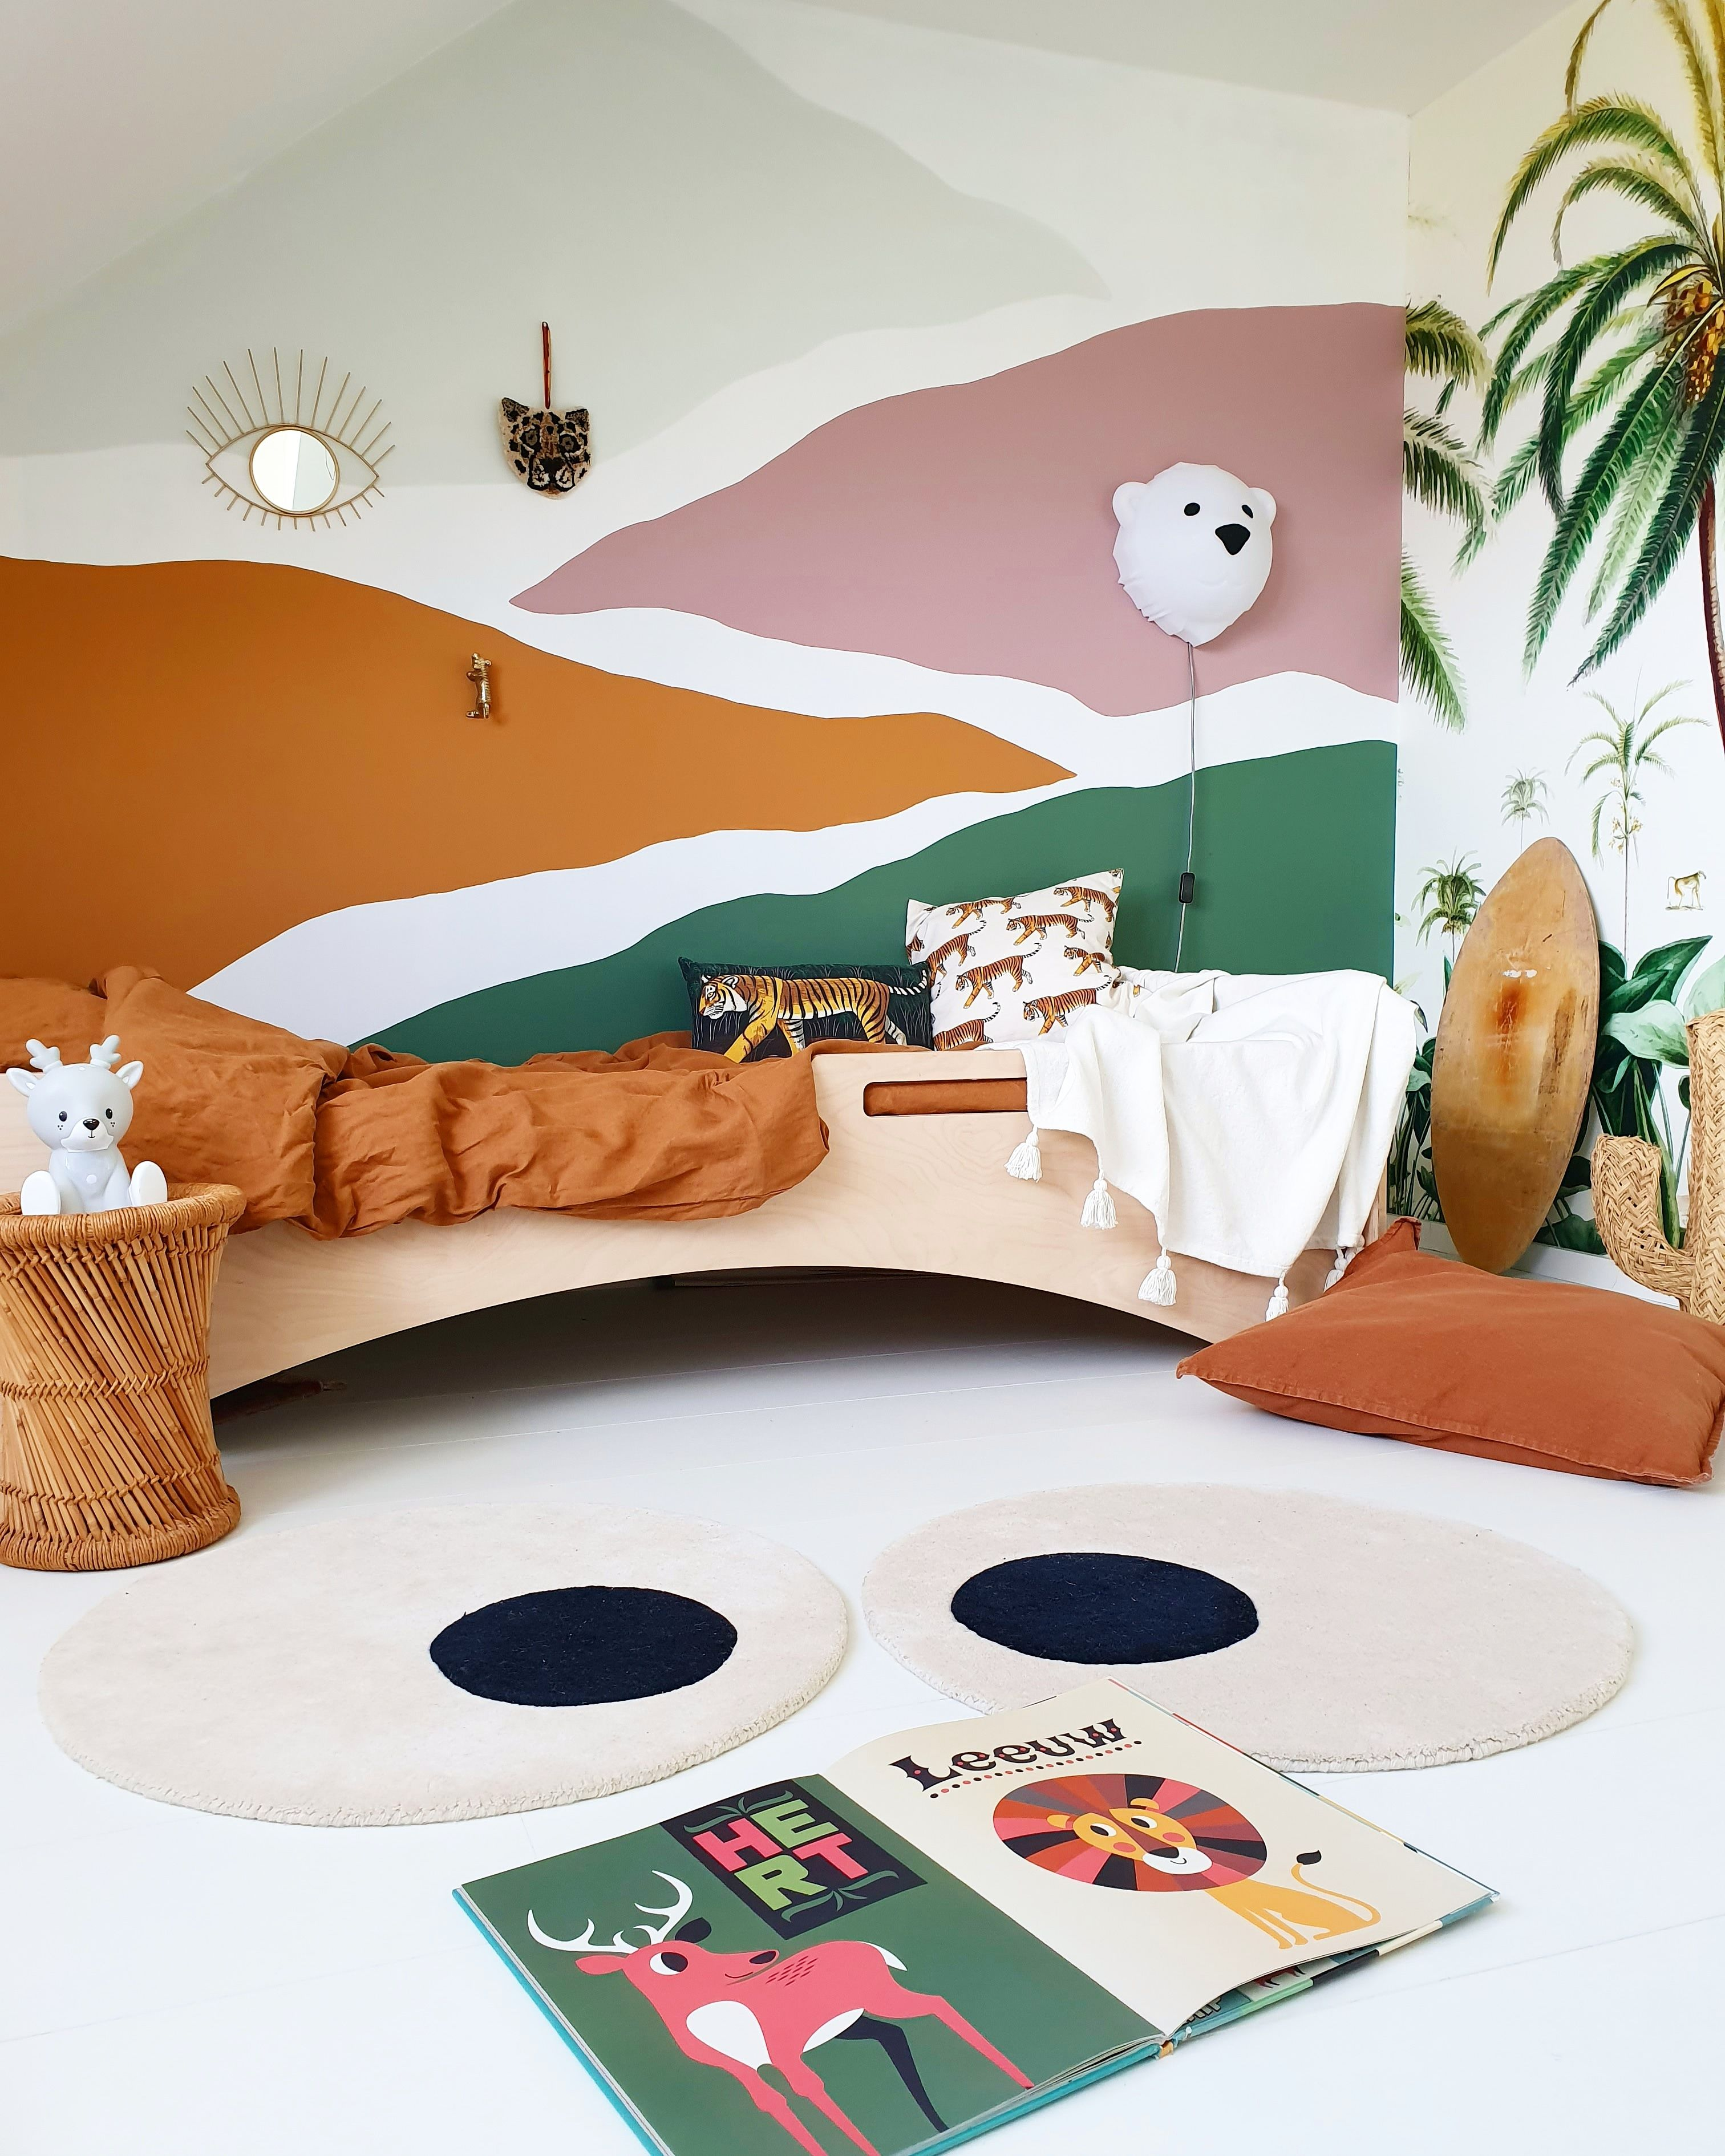 5 Ideas for Terracotta Rooms With Major Kid Appeal